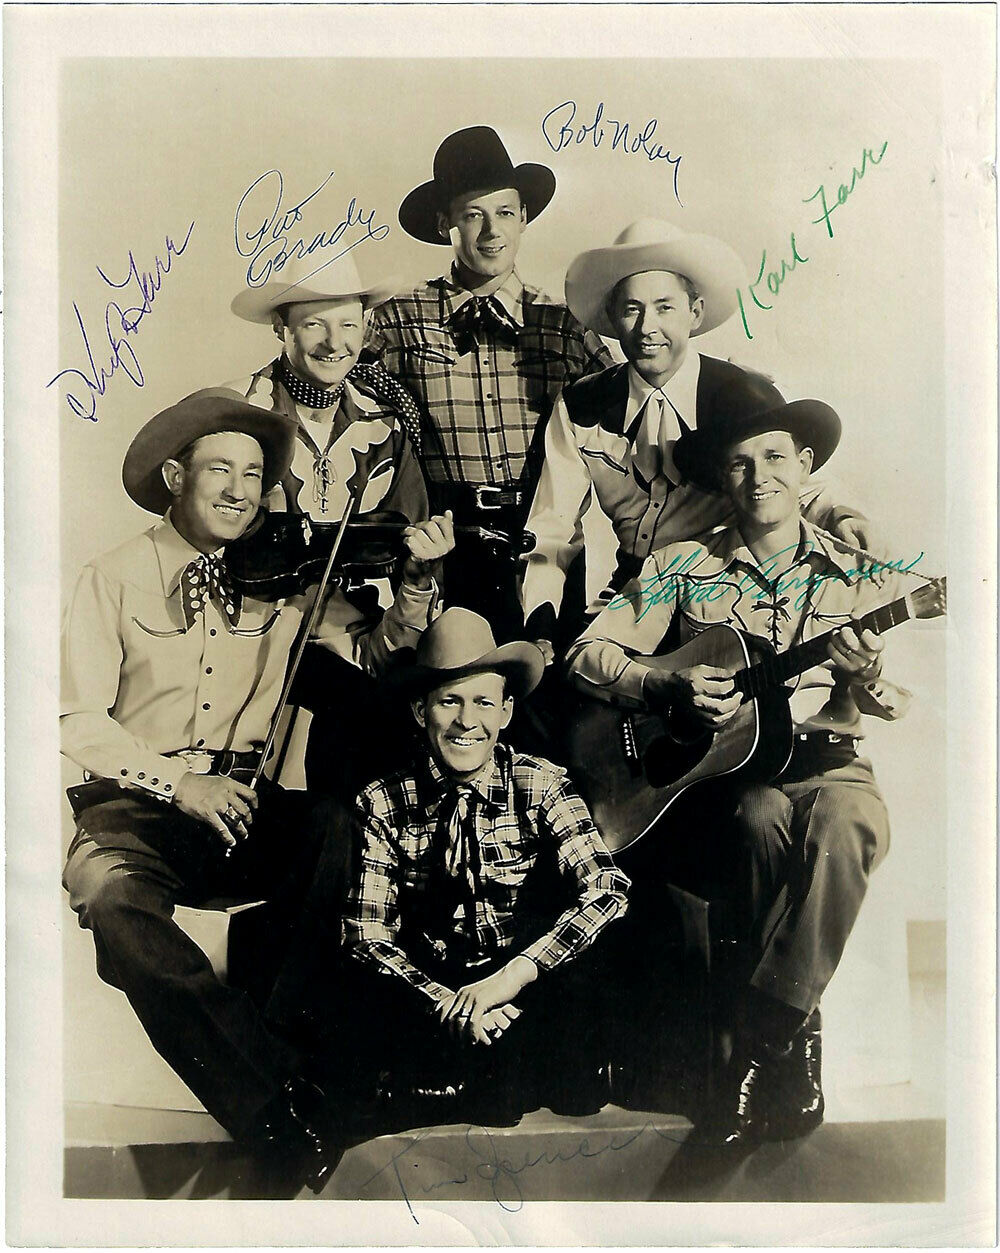 Sons of the Pioneers, 15th Anniversary 8x10 Autographed. Guaranteed Original!